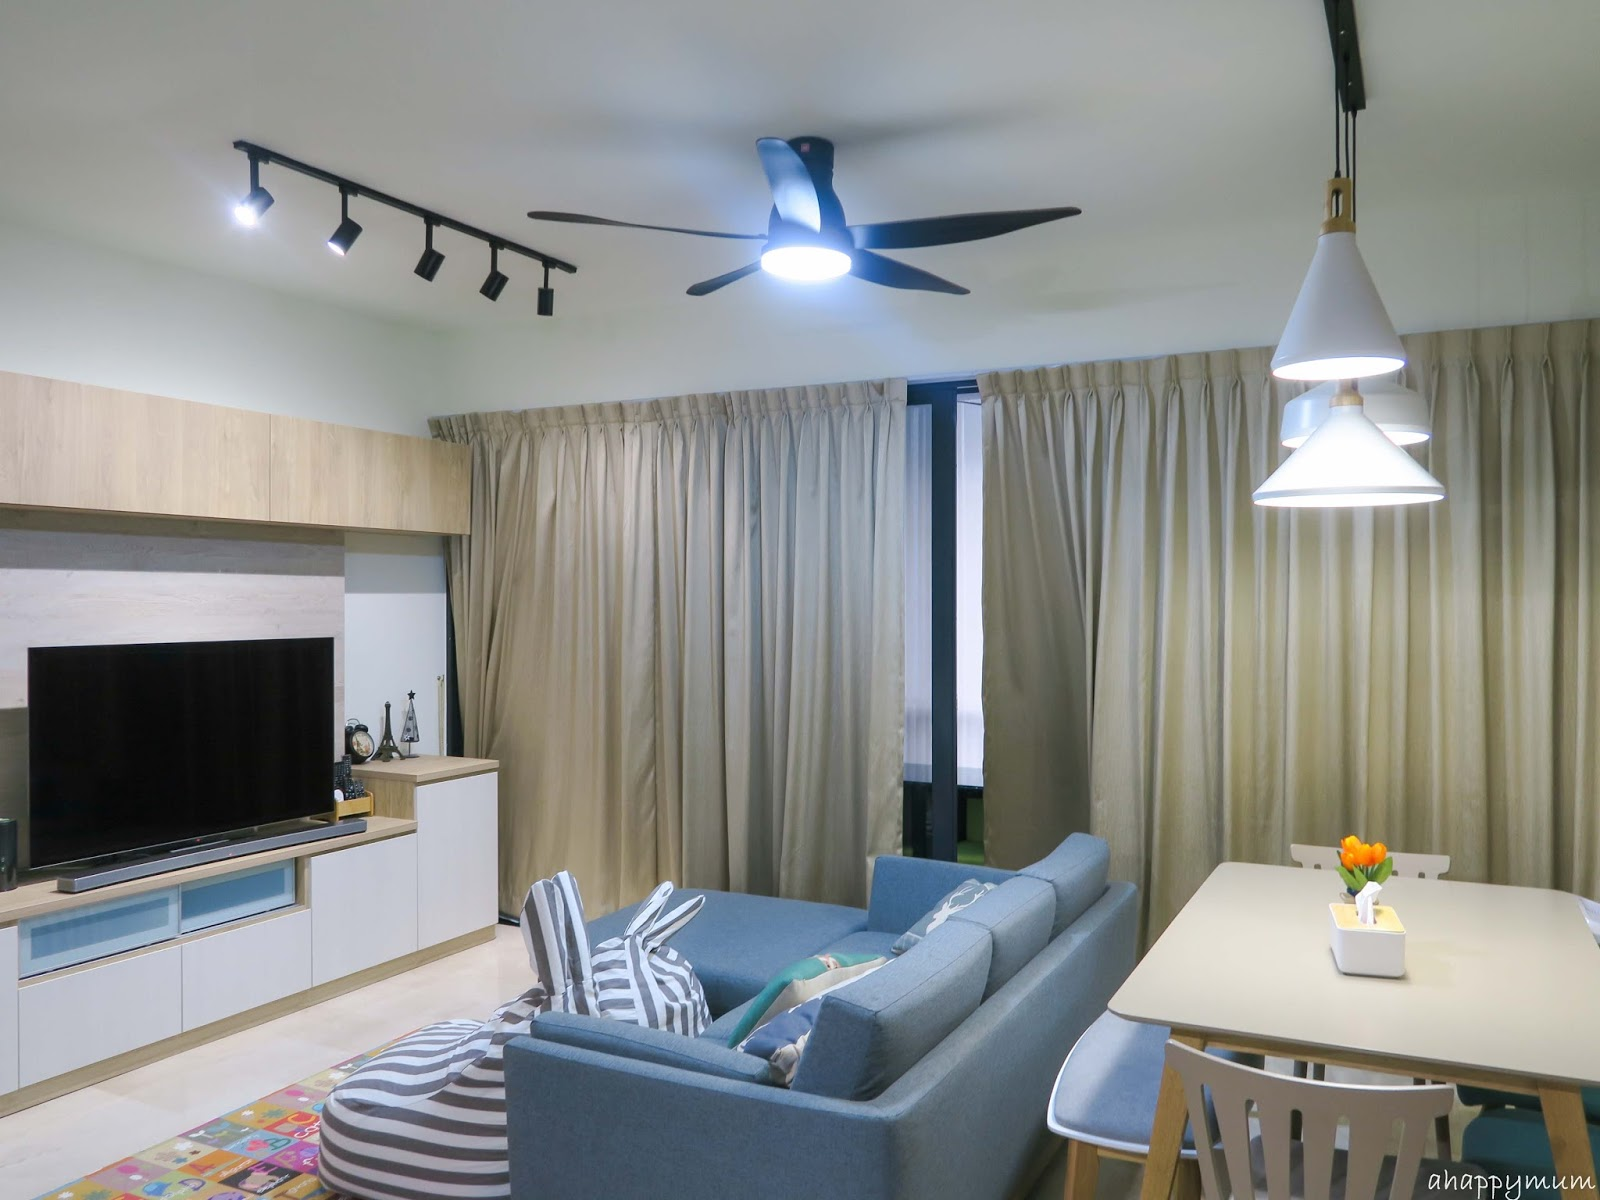 A happy mum singapore parenting blog for both the living room and master bedroom we installed the u60fw a remote controlled ceiling fan that has a dc motor and measures 60 inches 150cm in publicscrutiny Choice Image